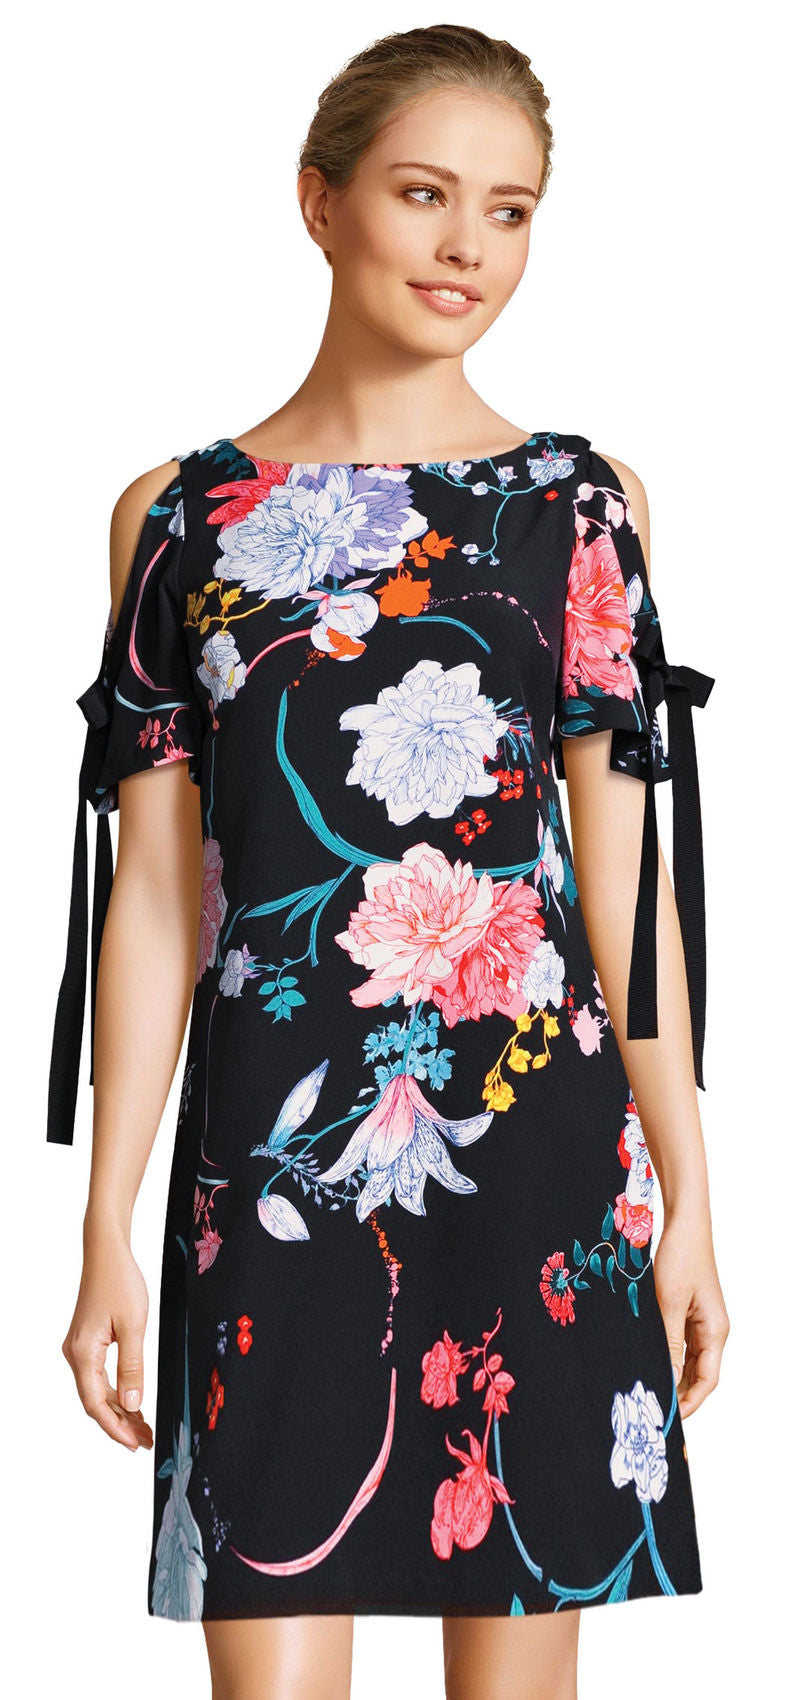 Zen Blossom Shift Dress - Black Multi